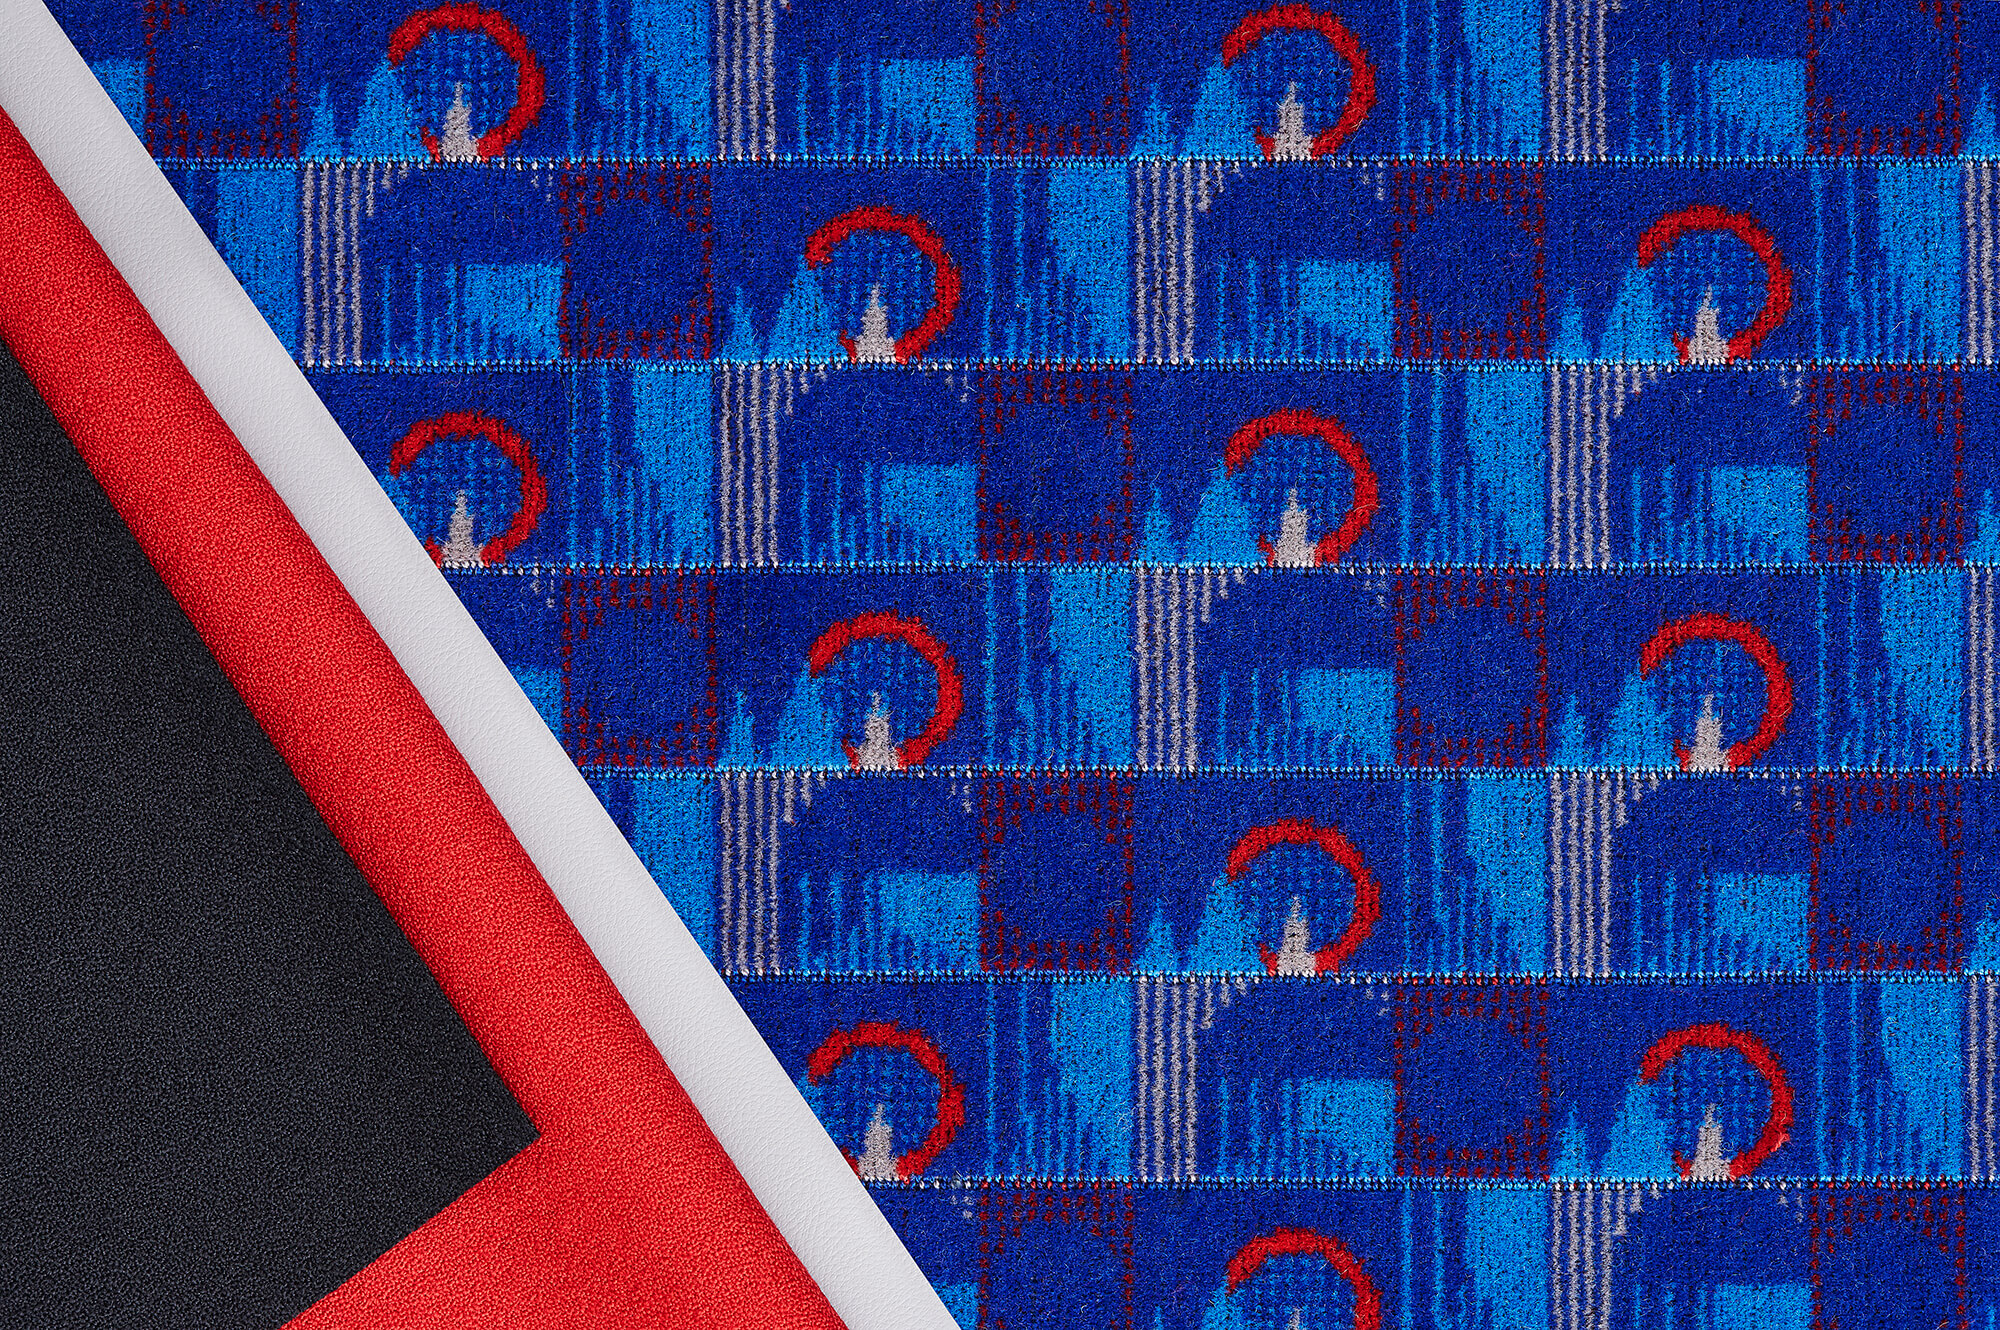 Railway news moquette fabric for london underground for London underground moquette